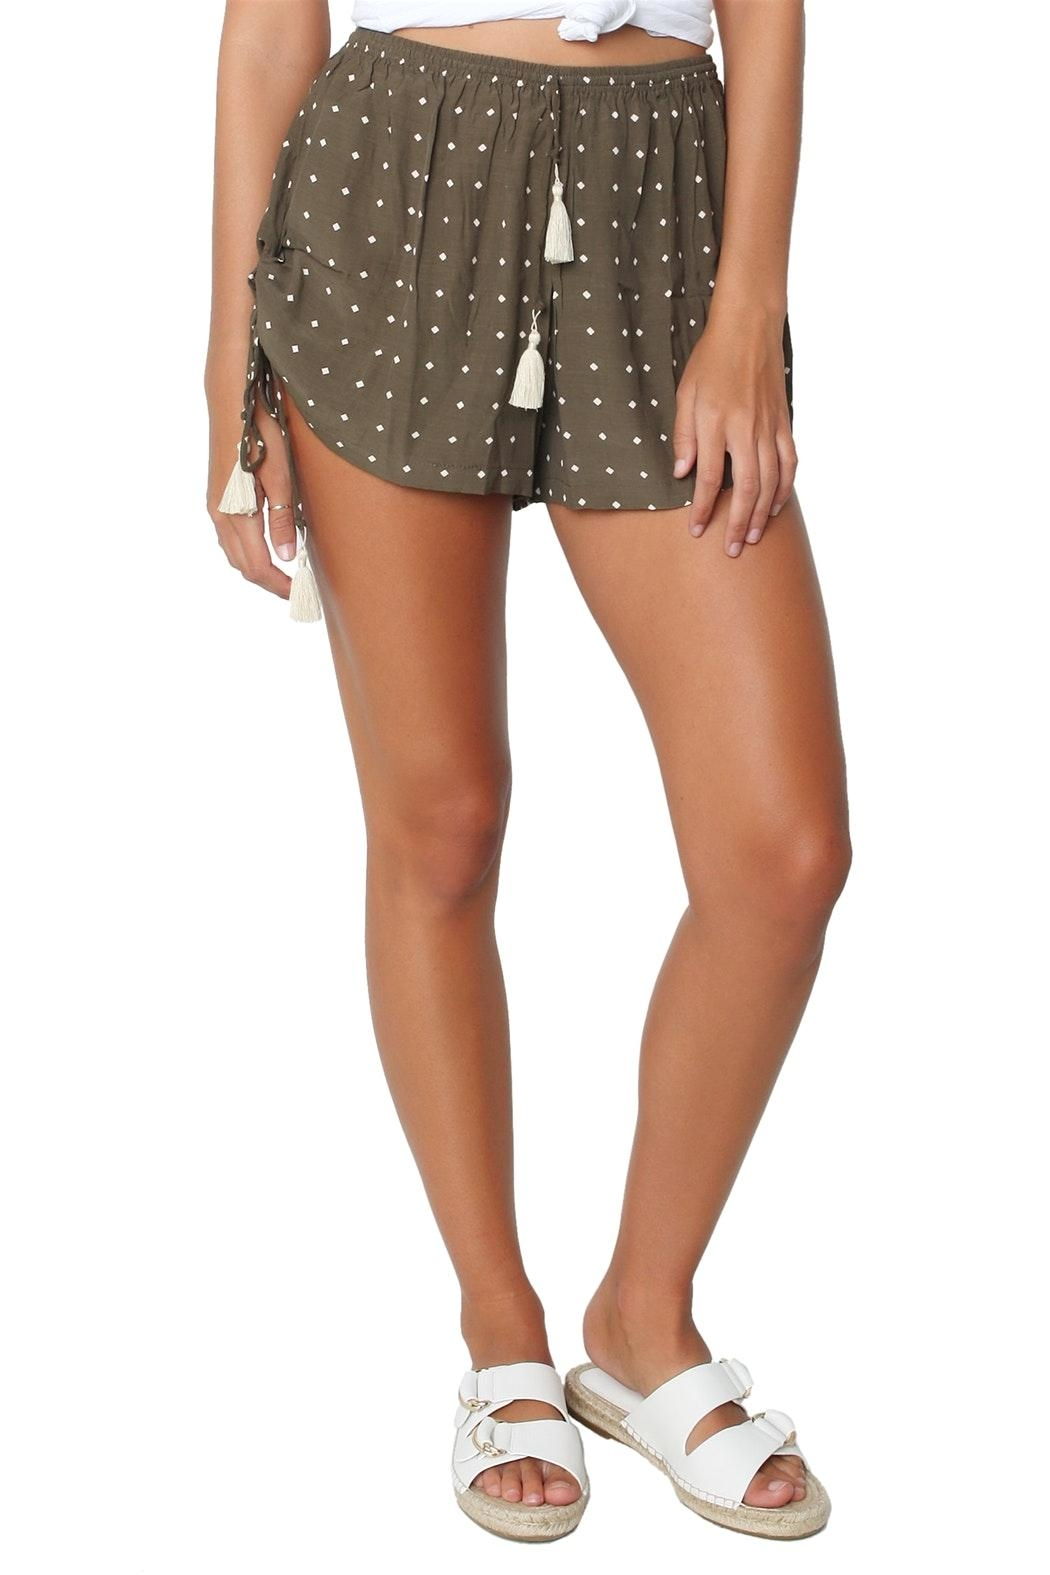 Faithfull The Brand Gypsy Shorts - Front Cropped Image